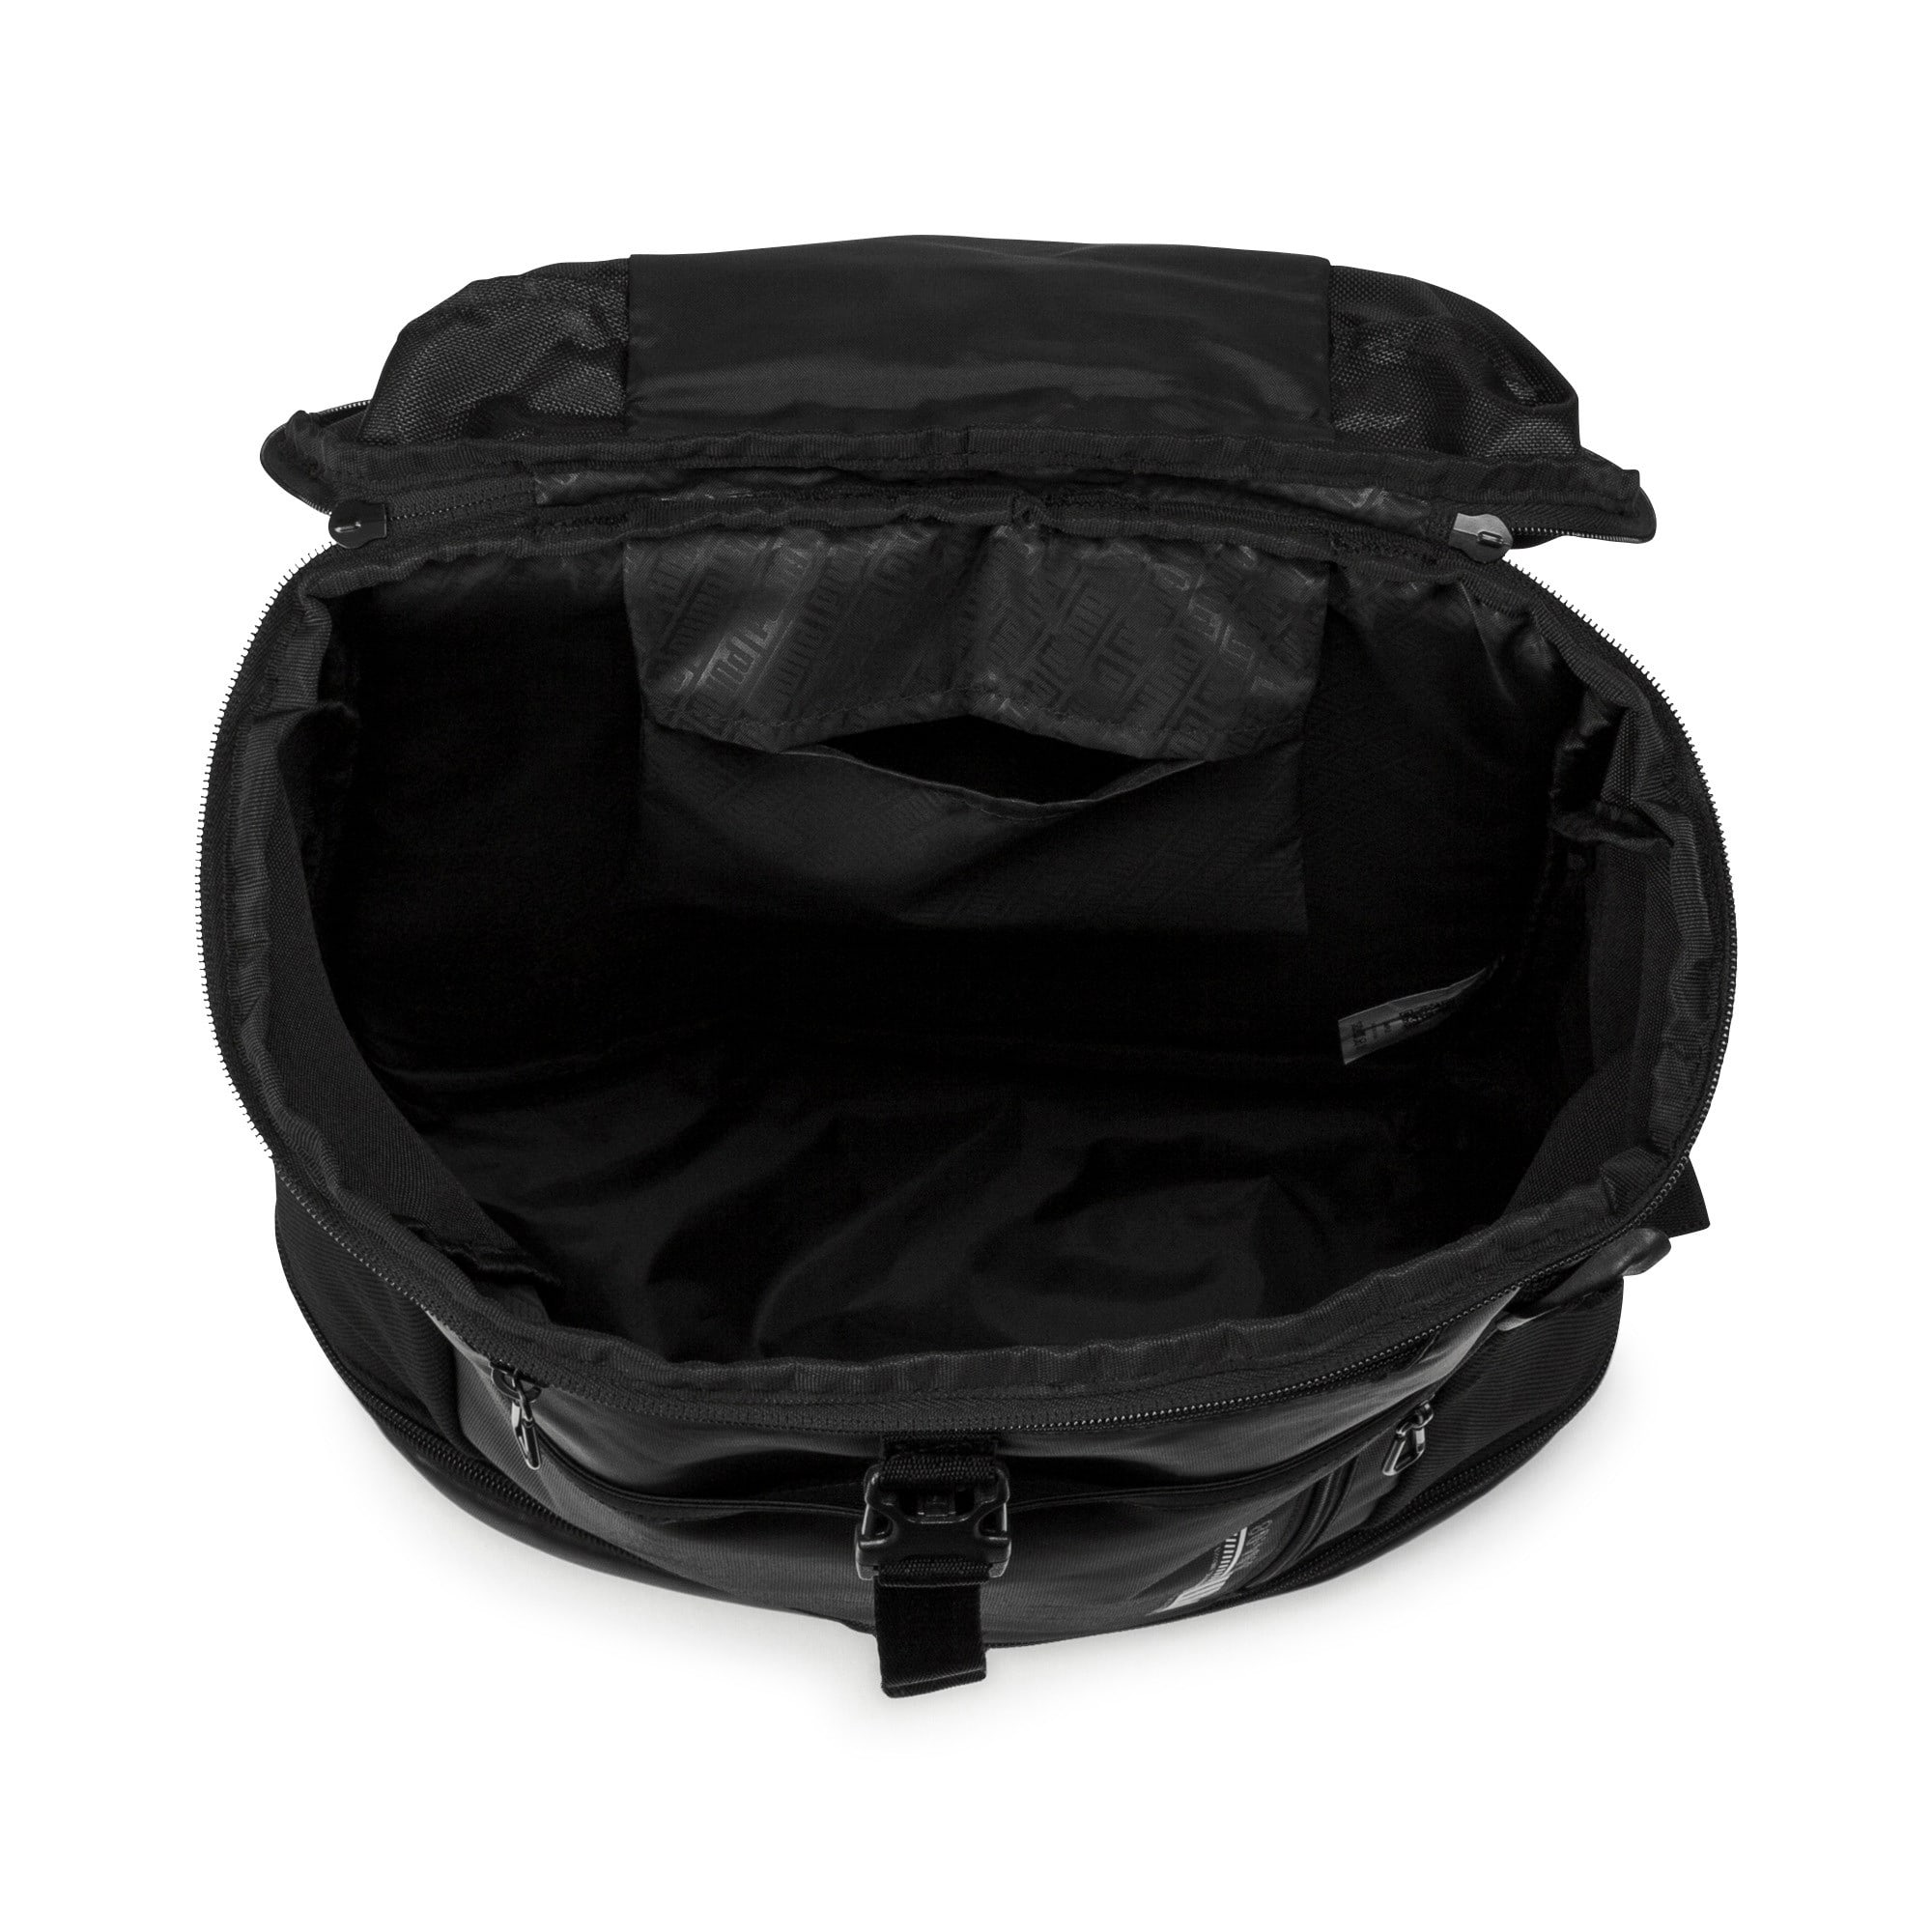 Thumbnail 3 of Energy Premium Backpack, Puma Black, medium-IND